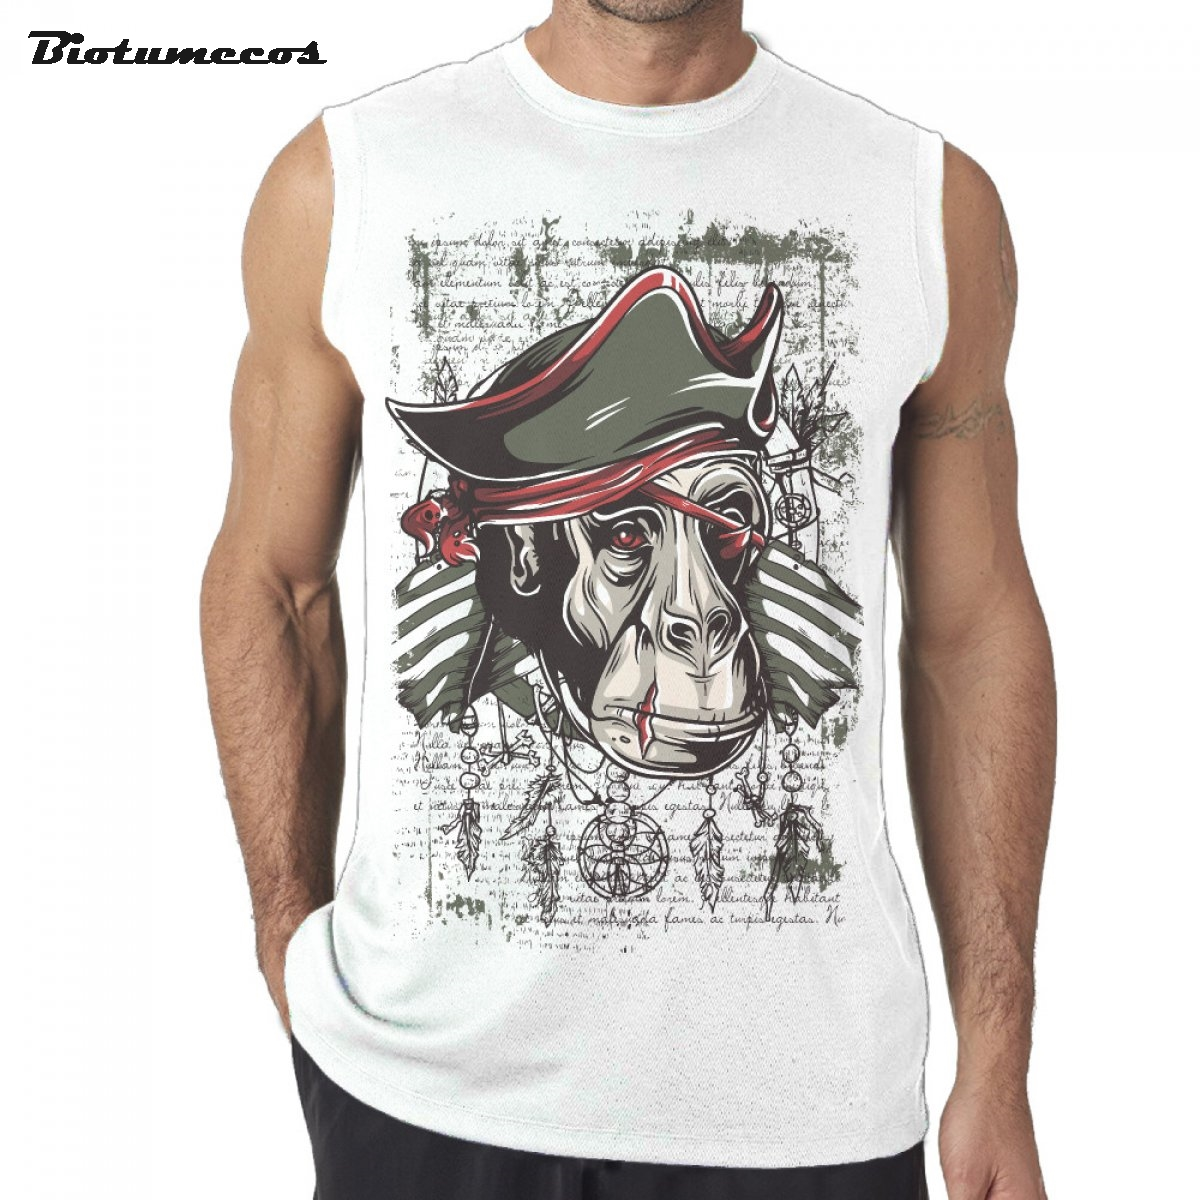 Men Tank Tops Brand Sleeveless T shirts One-eyes Person Ape Man Pirate Wear Patches Printed Casual Summer Undershirts MWD026